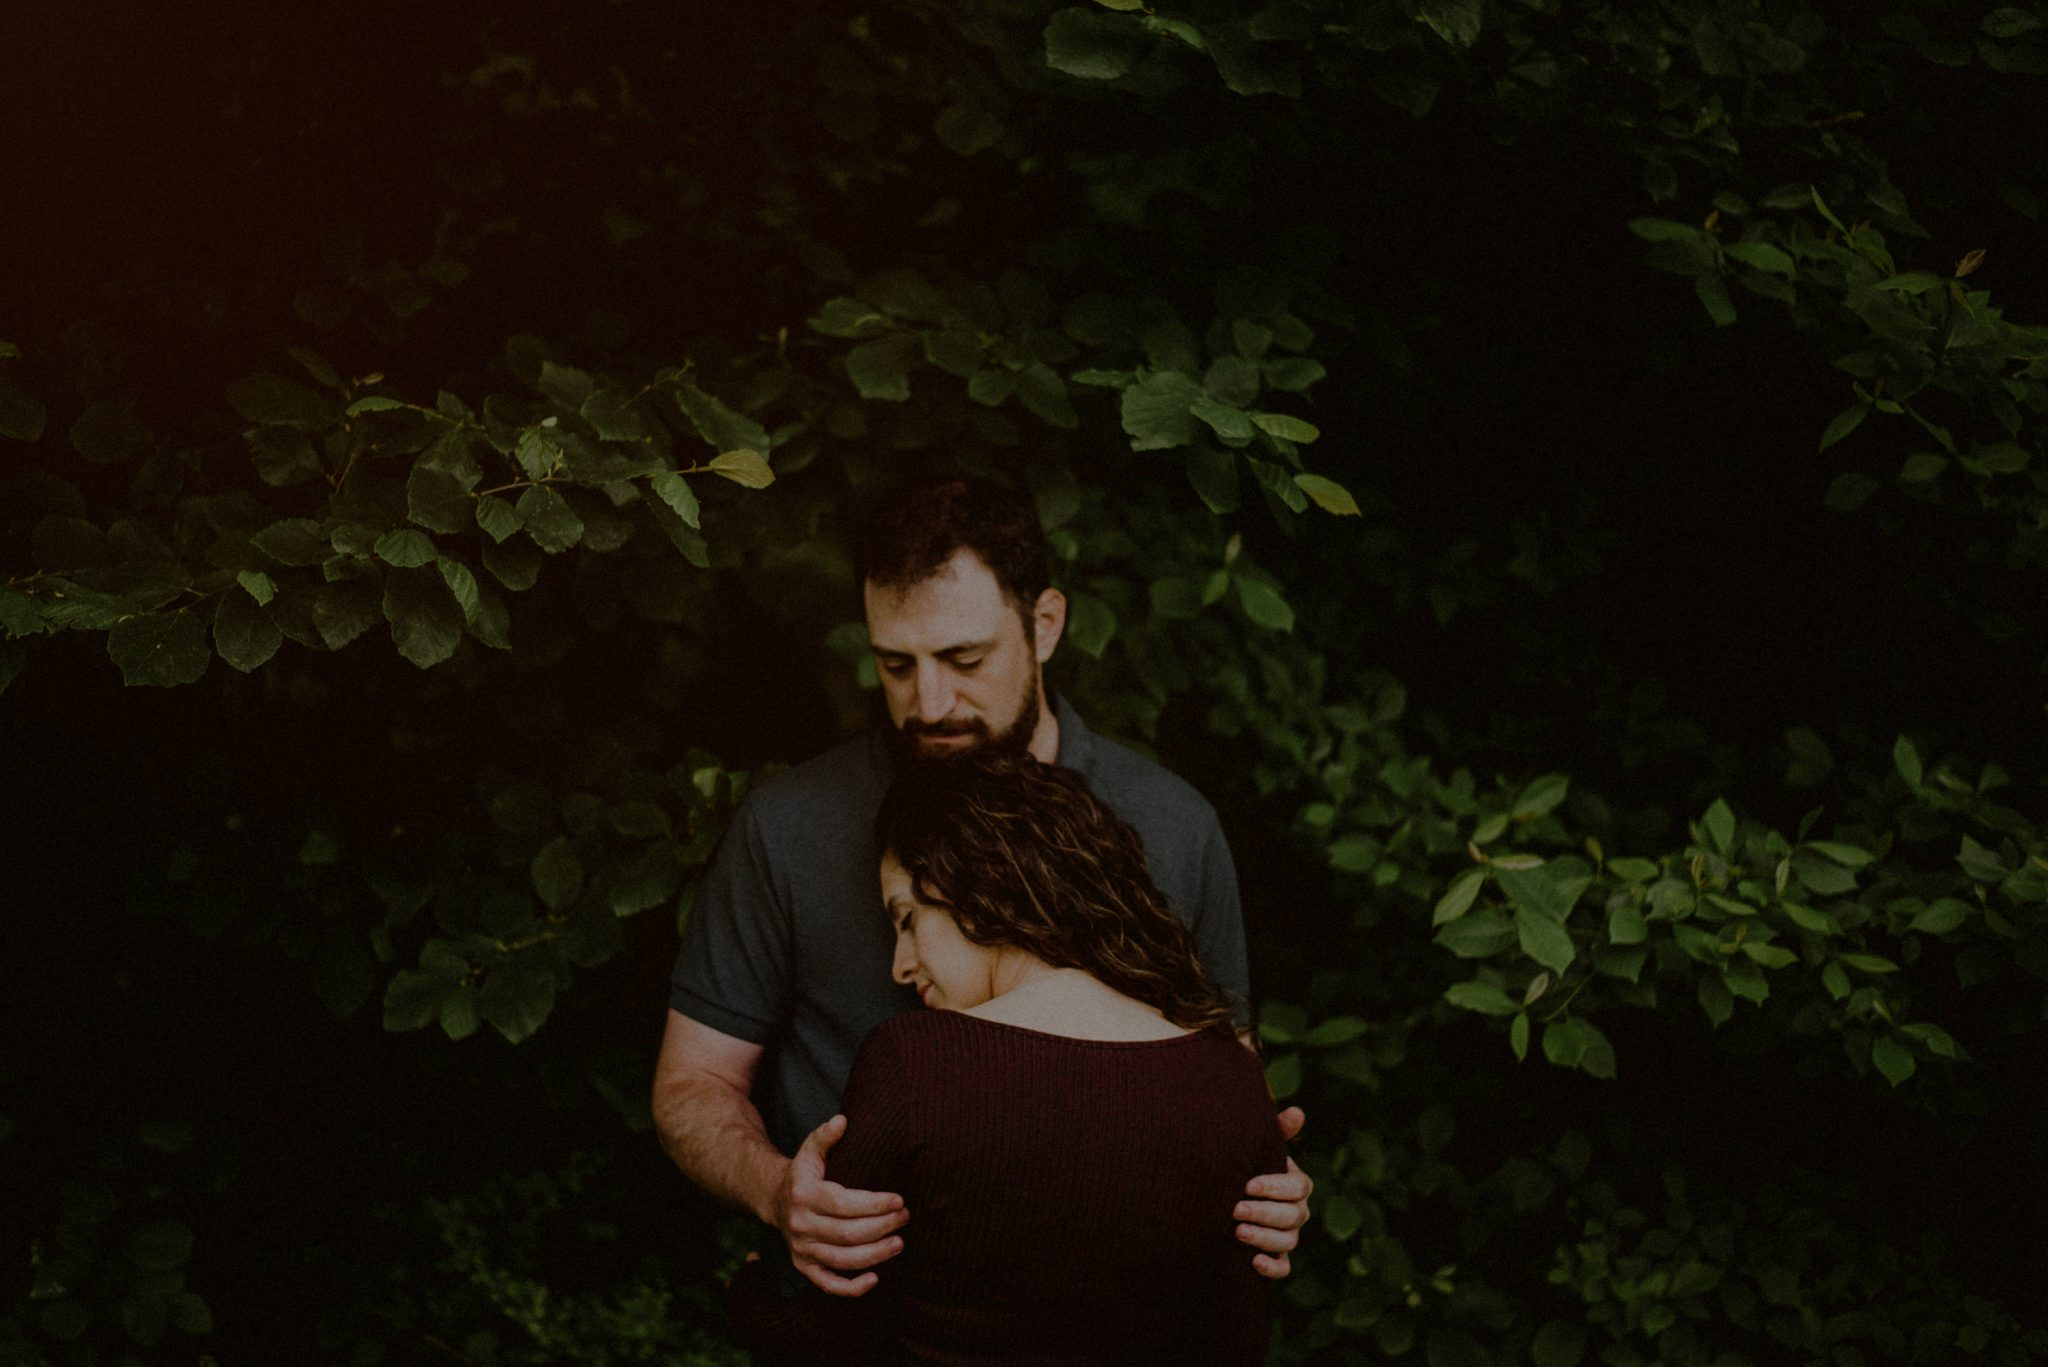 engagement session in the woods in nj